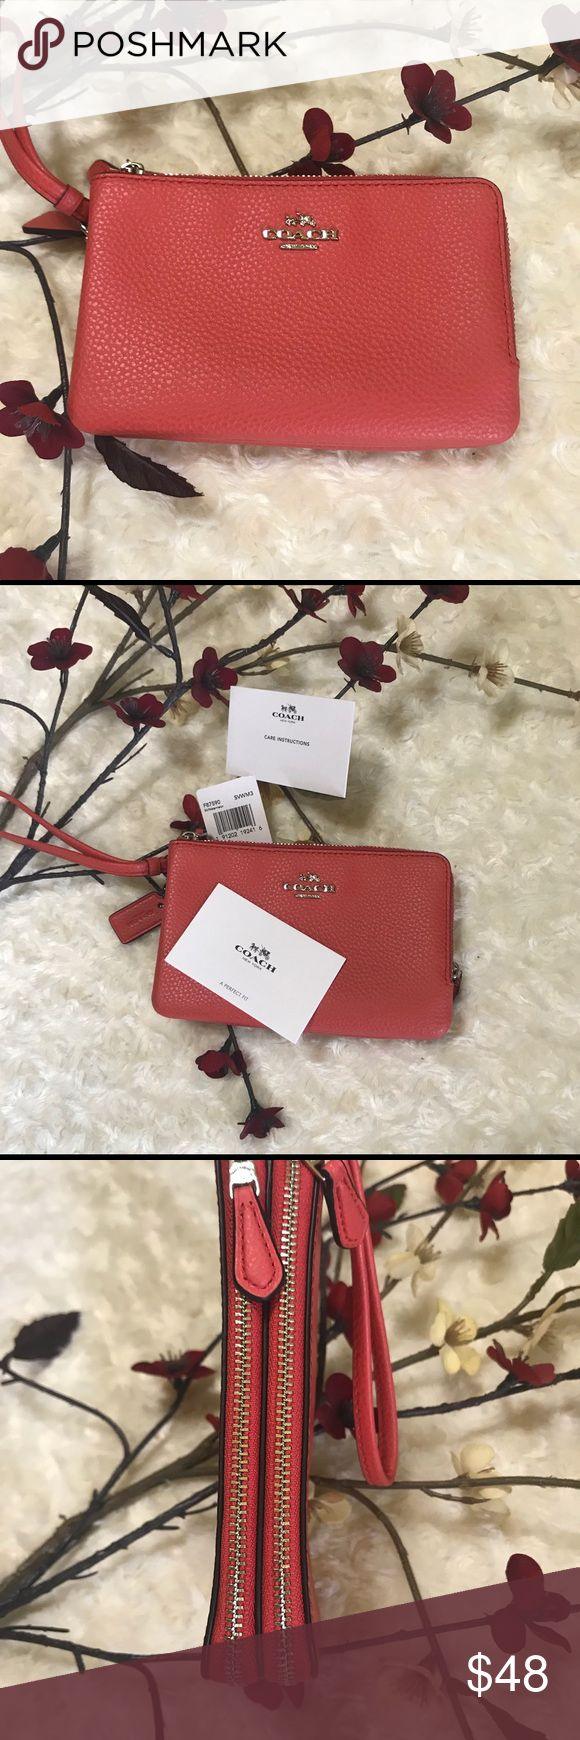 """Coach pebble leather wristlet. NWT Authentic Coach pebble leather, double corner zip wristlet in deep orange   Features two separate zippered compartments one used for credit card, ID, money etc and the other for phone. Gold tone hardware with heritage horse and carriage coach logo Wallet 6.25""""Lx4""""Hx1""""W Strap 6 1/4"""" L x 4"""" H NWT Coach Bags Clutches & Wristlets"""